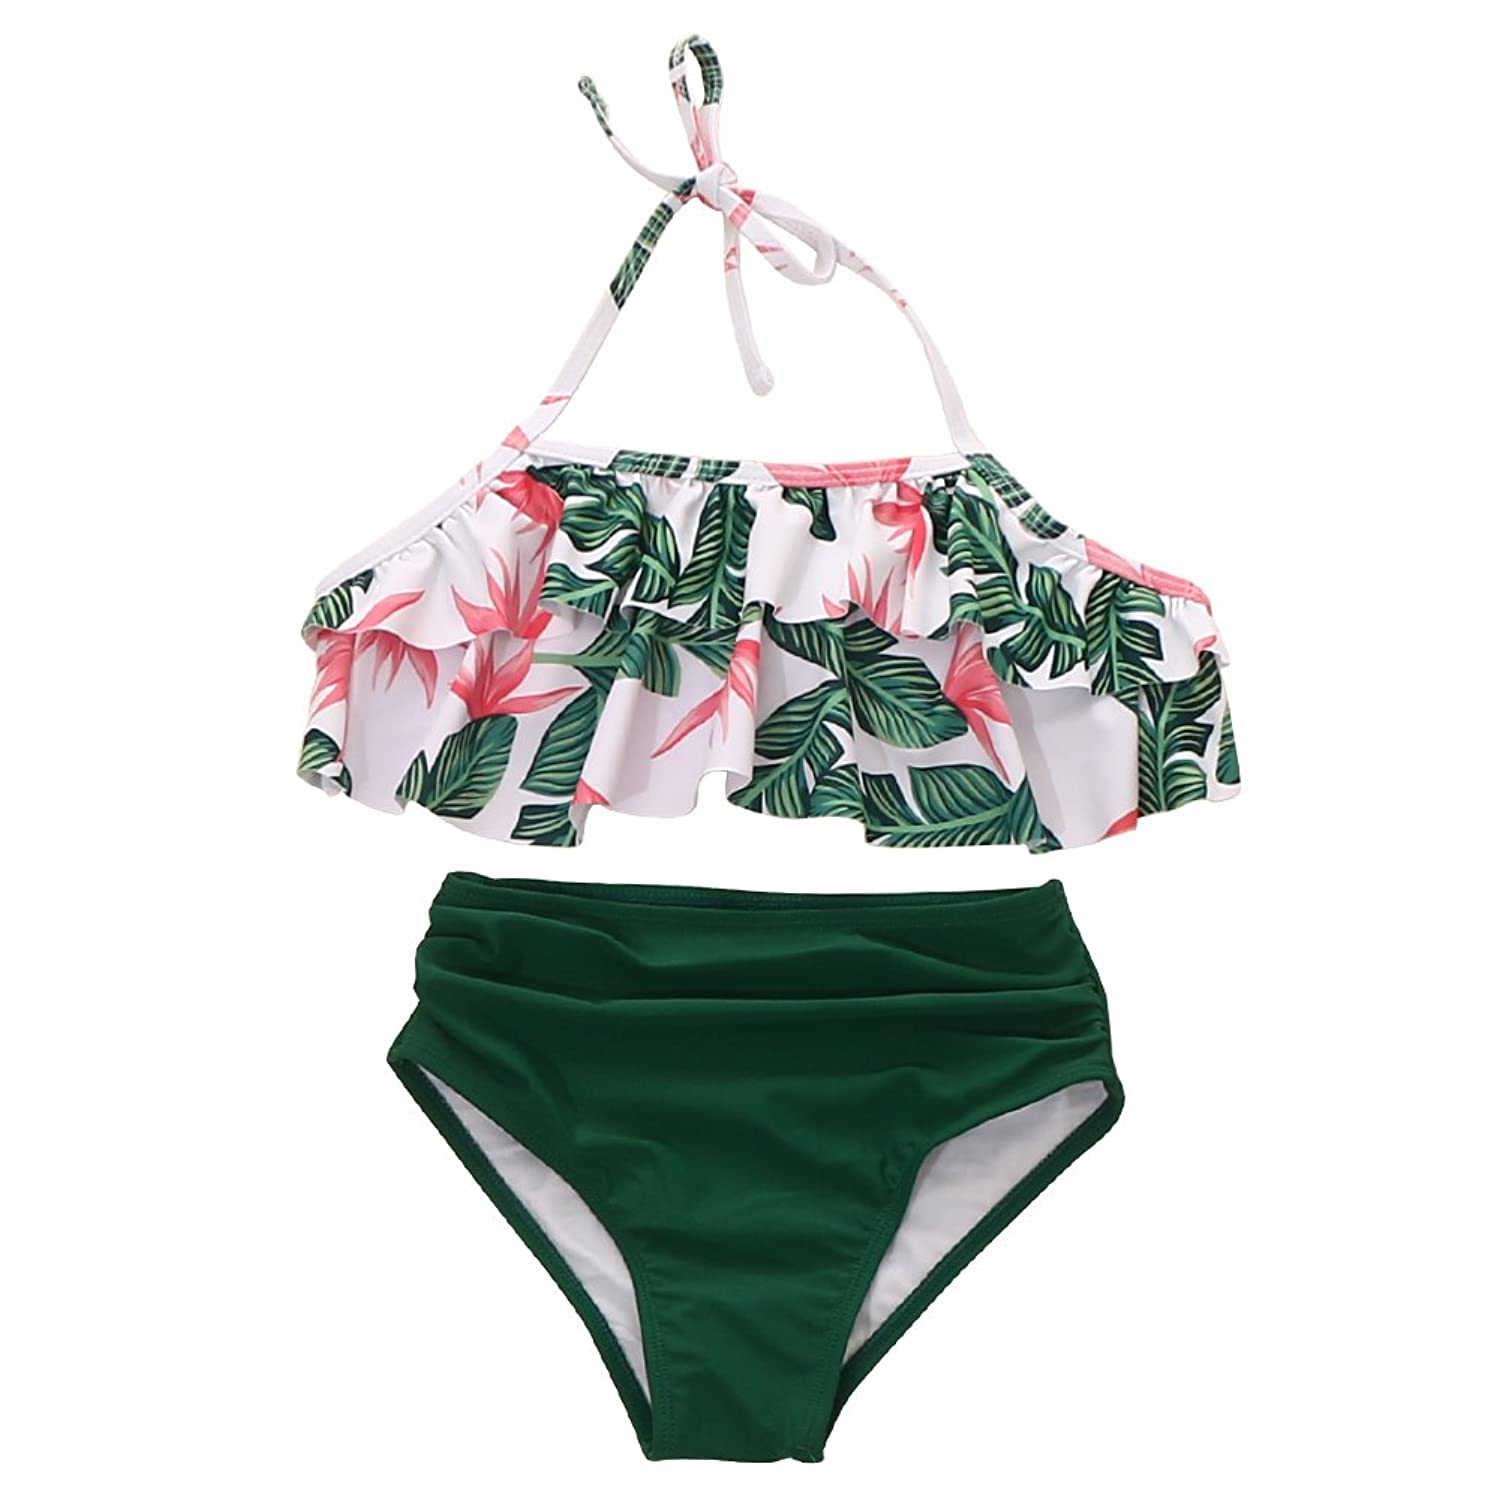 533e1d89895c7 High waisted swimsuits for girls or mums, (????????????NOTICE:Mother &Girl  style,)falbala,Family Matching, The Fabric of girls bathing suit contain ...